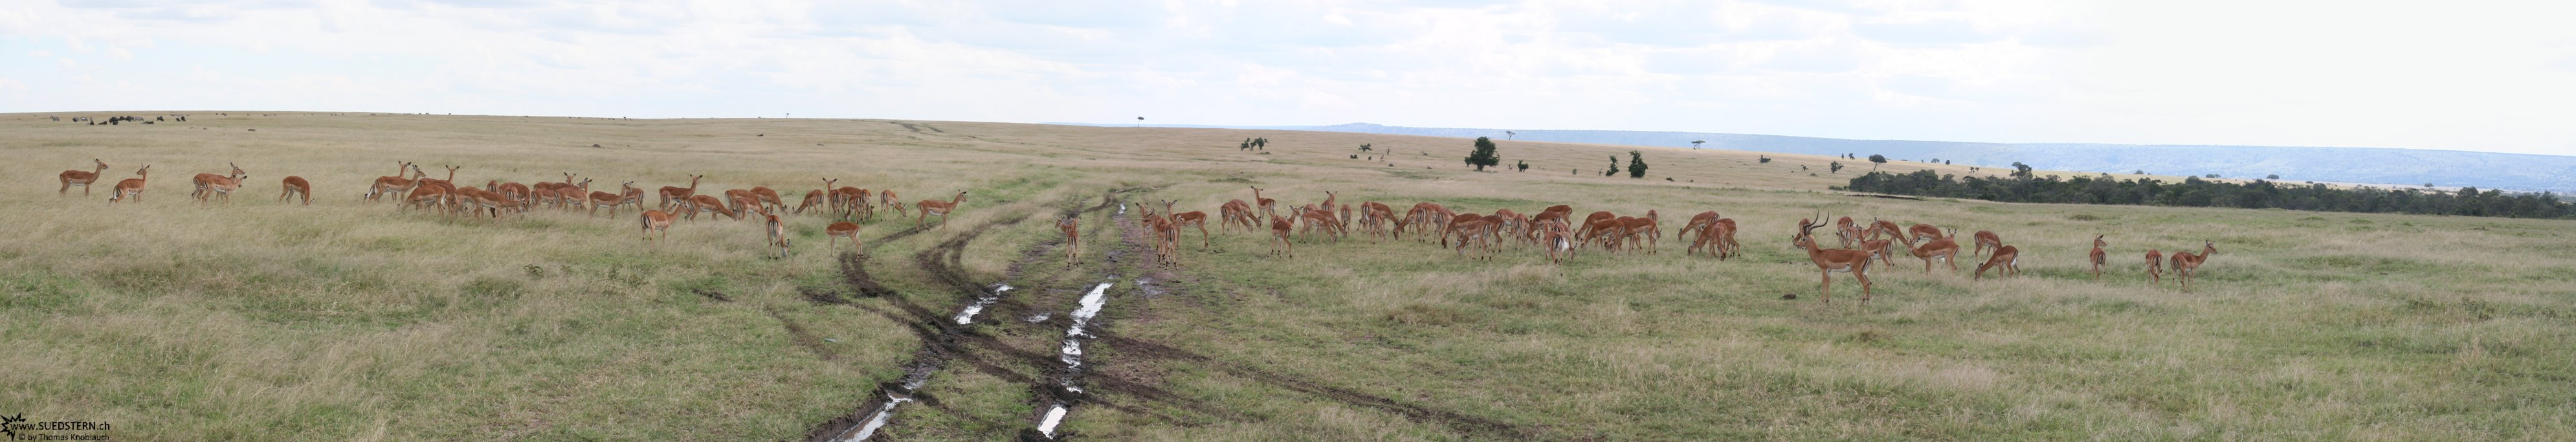 2007-04-14 - Kenya - Massai Mara - group of gazelles panorama